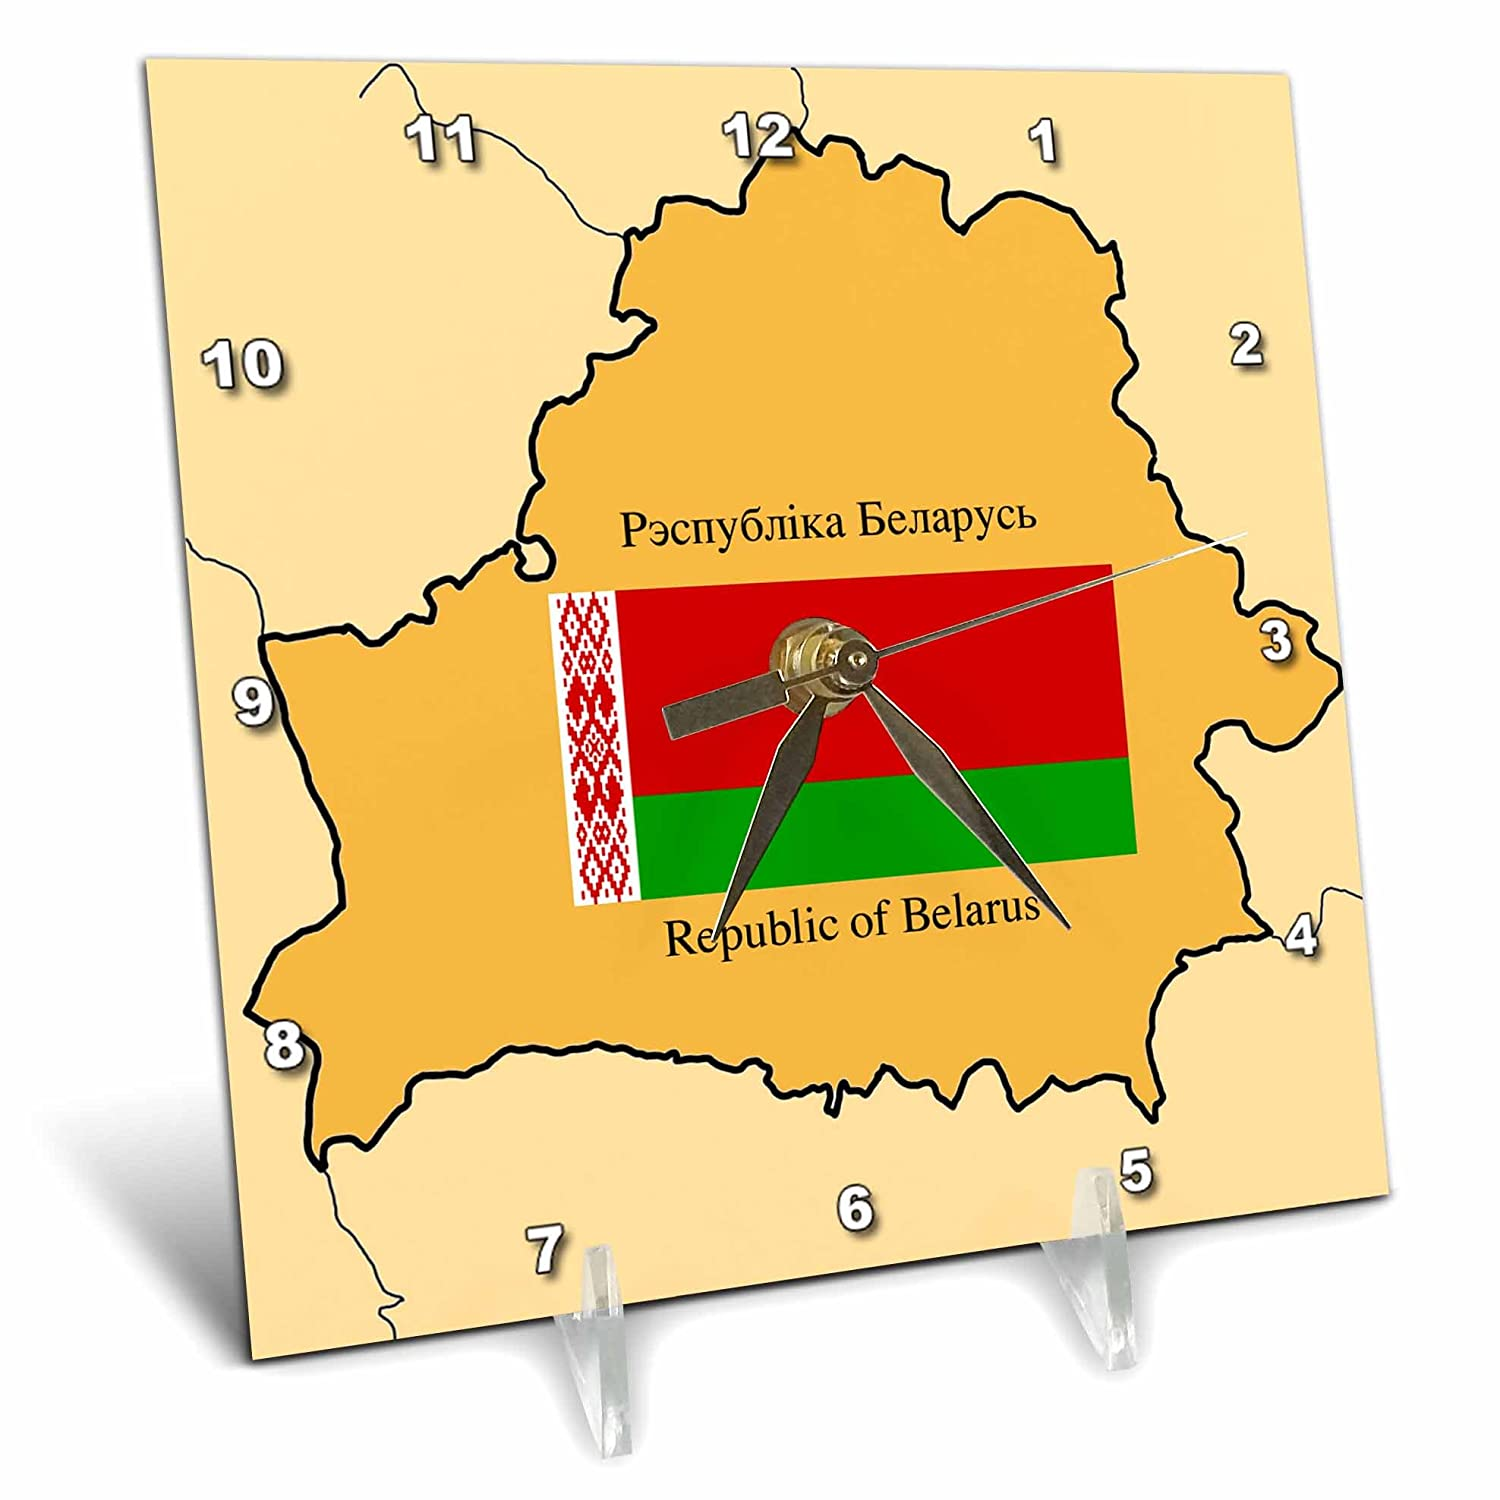 dc/_47322/_1 Map and Flag of Belarus with Republic of Belarus printed in English and Belarusian 6x6 Desk Clock 3dRose 777images Flags and Maps